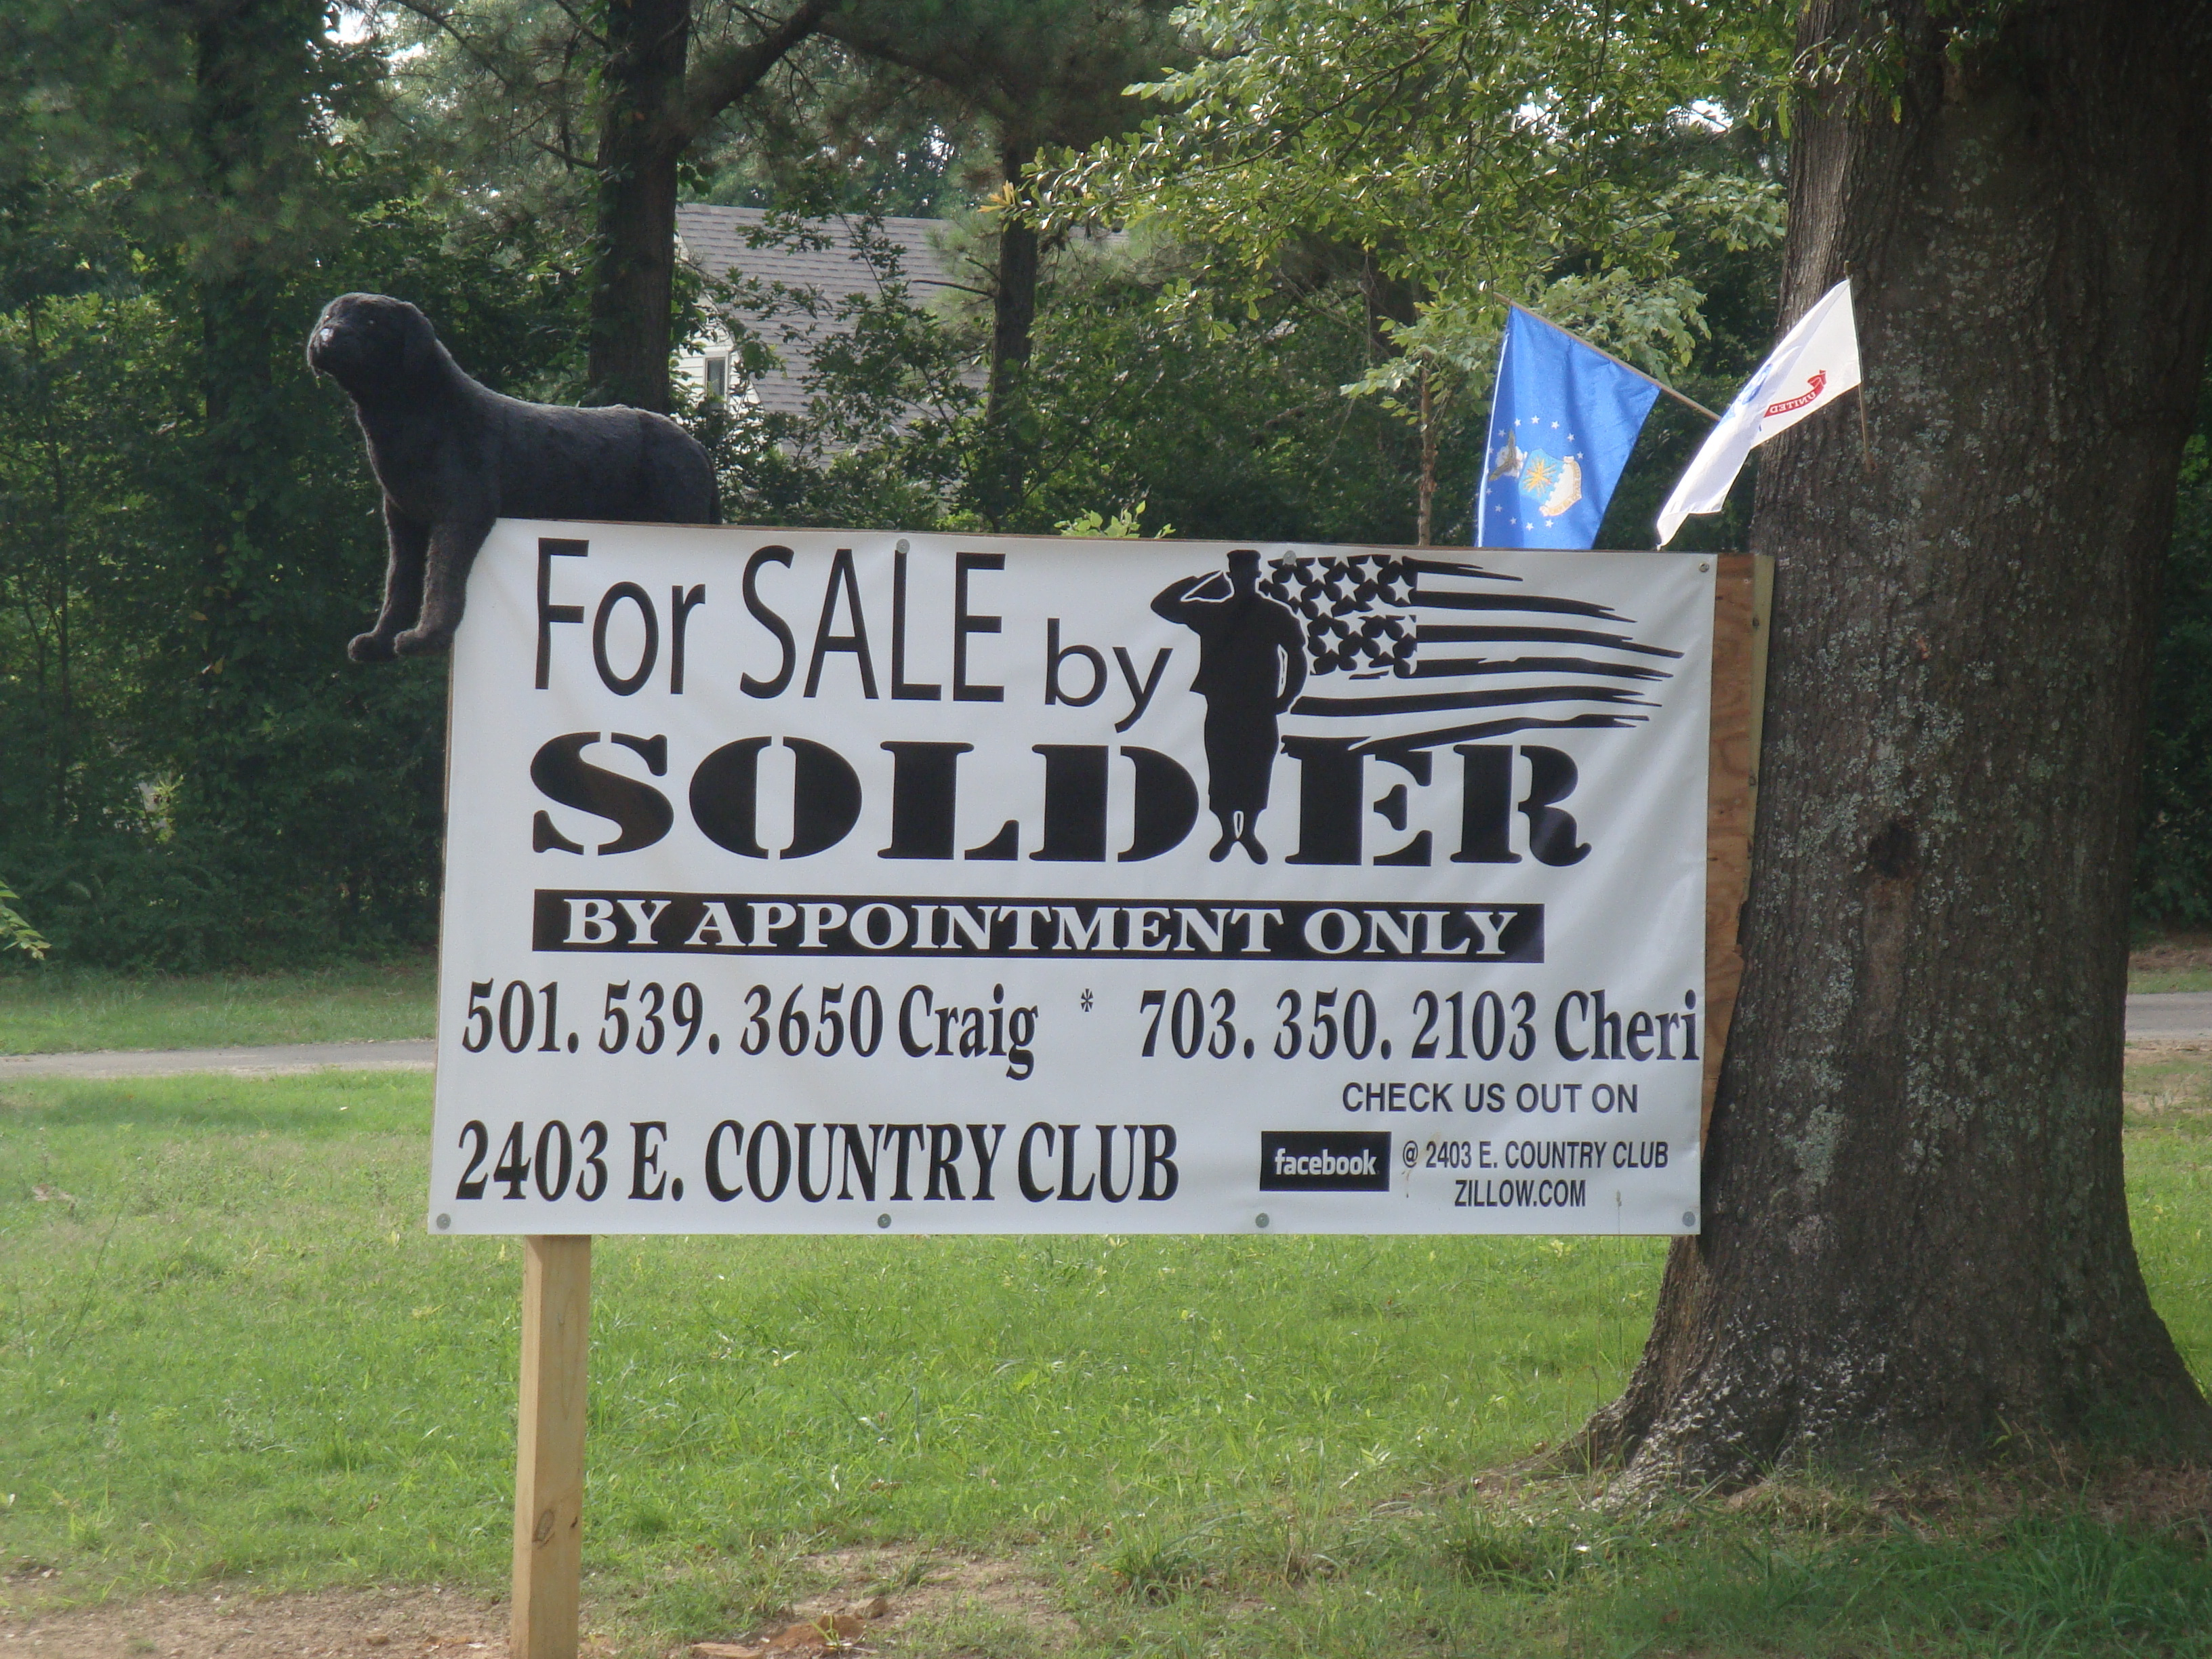 Soldier house for sale Big sign Traveling Dog Humor